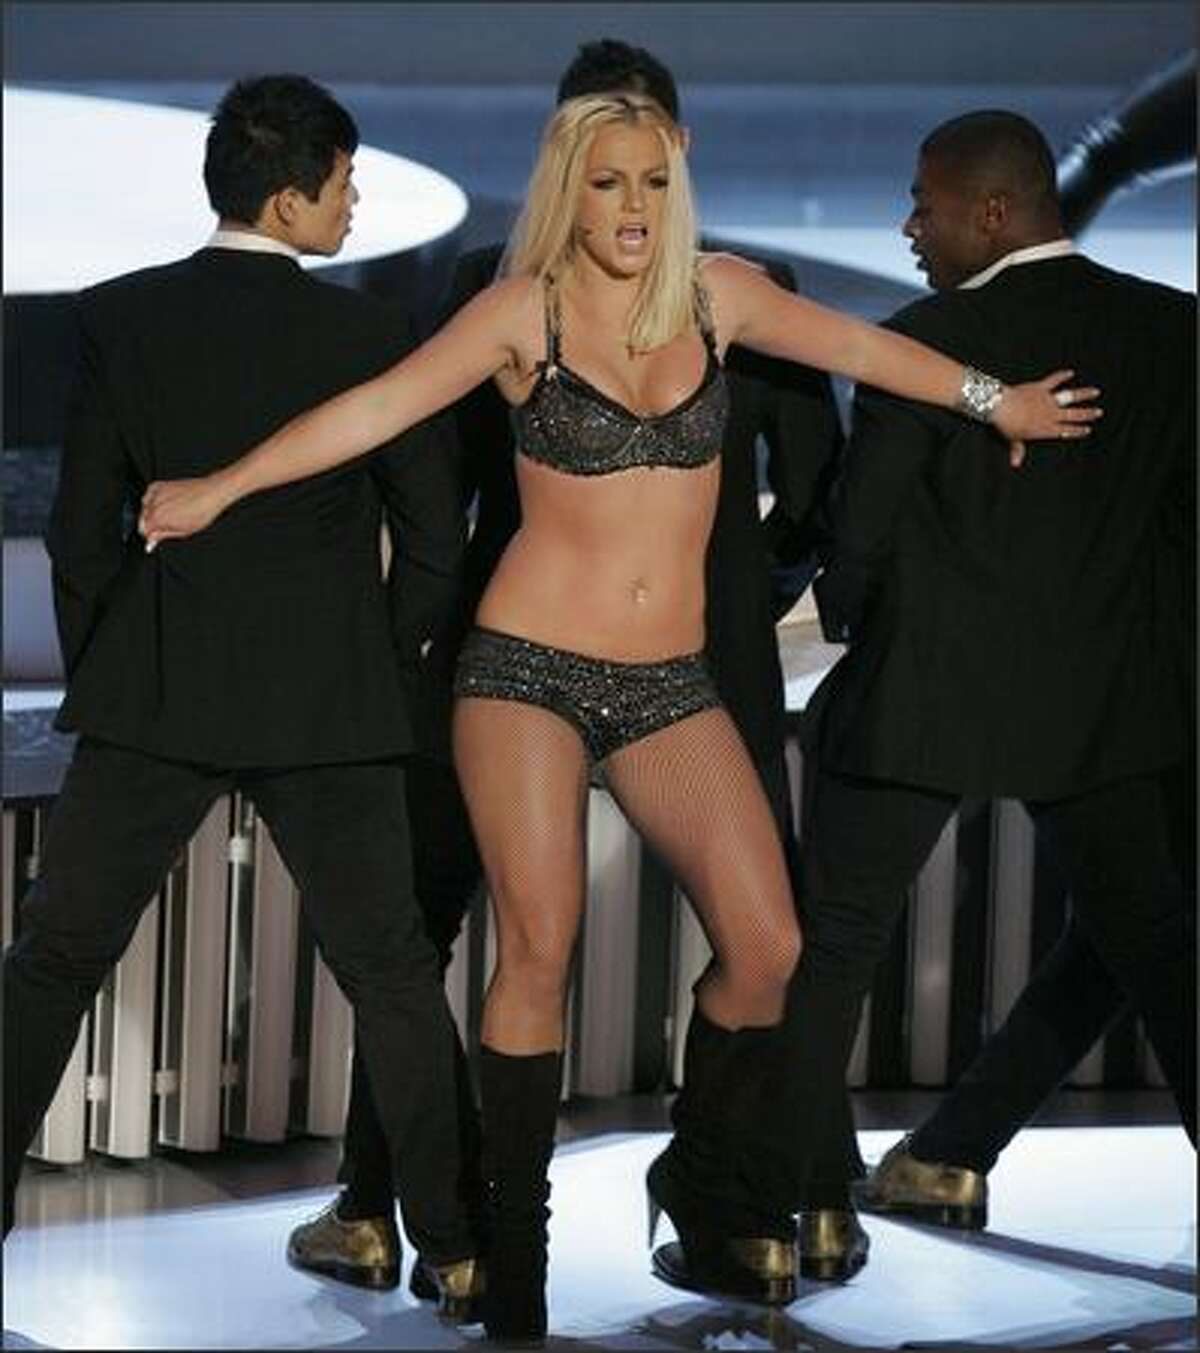 Britney Spears performs at the MTV Video Music Awards. (AP Photo/Mark J. Terrill)